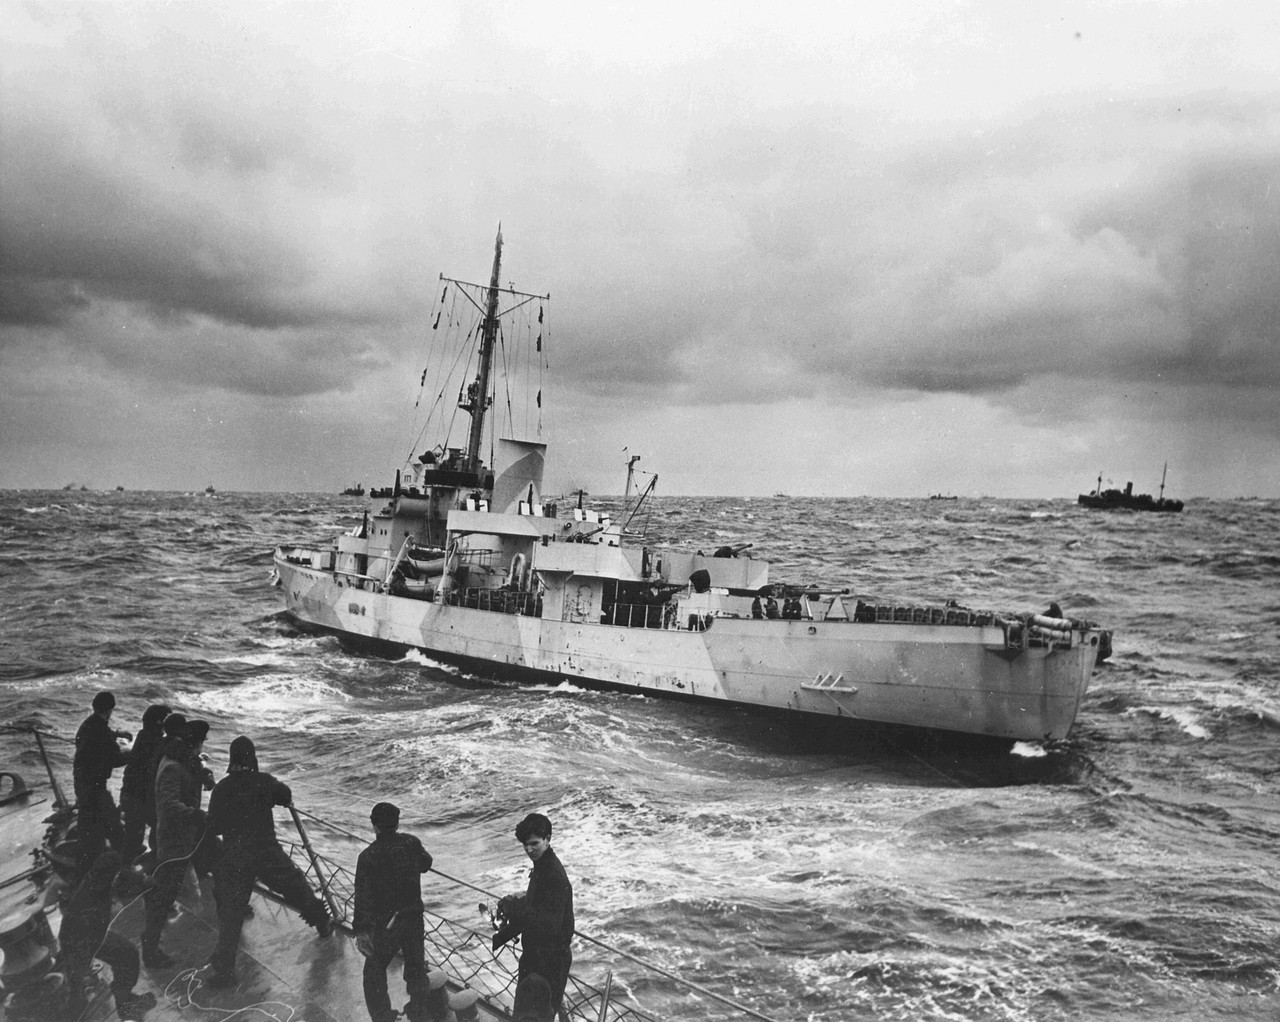 Coast Guard cutter USS Spencer on convoy duty in the North Atlantic, March 1943